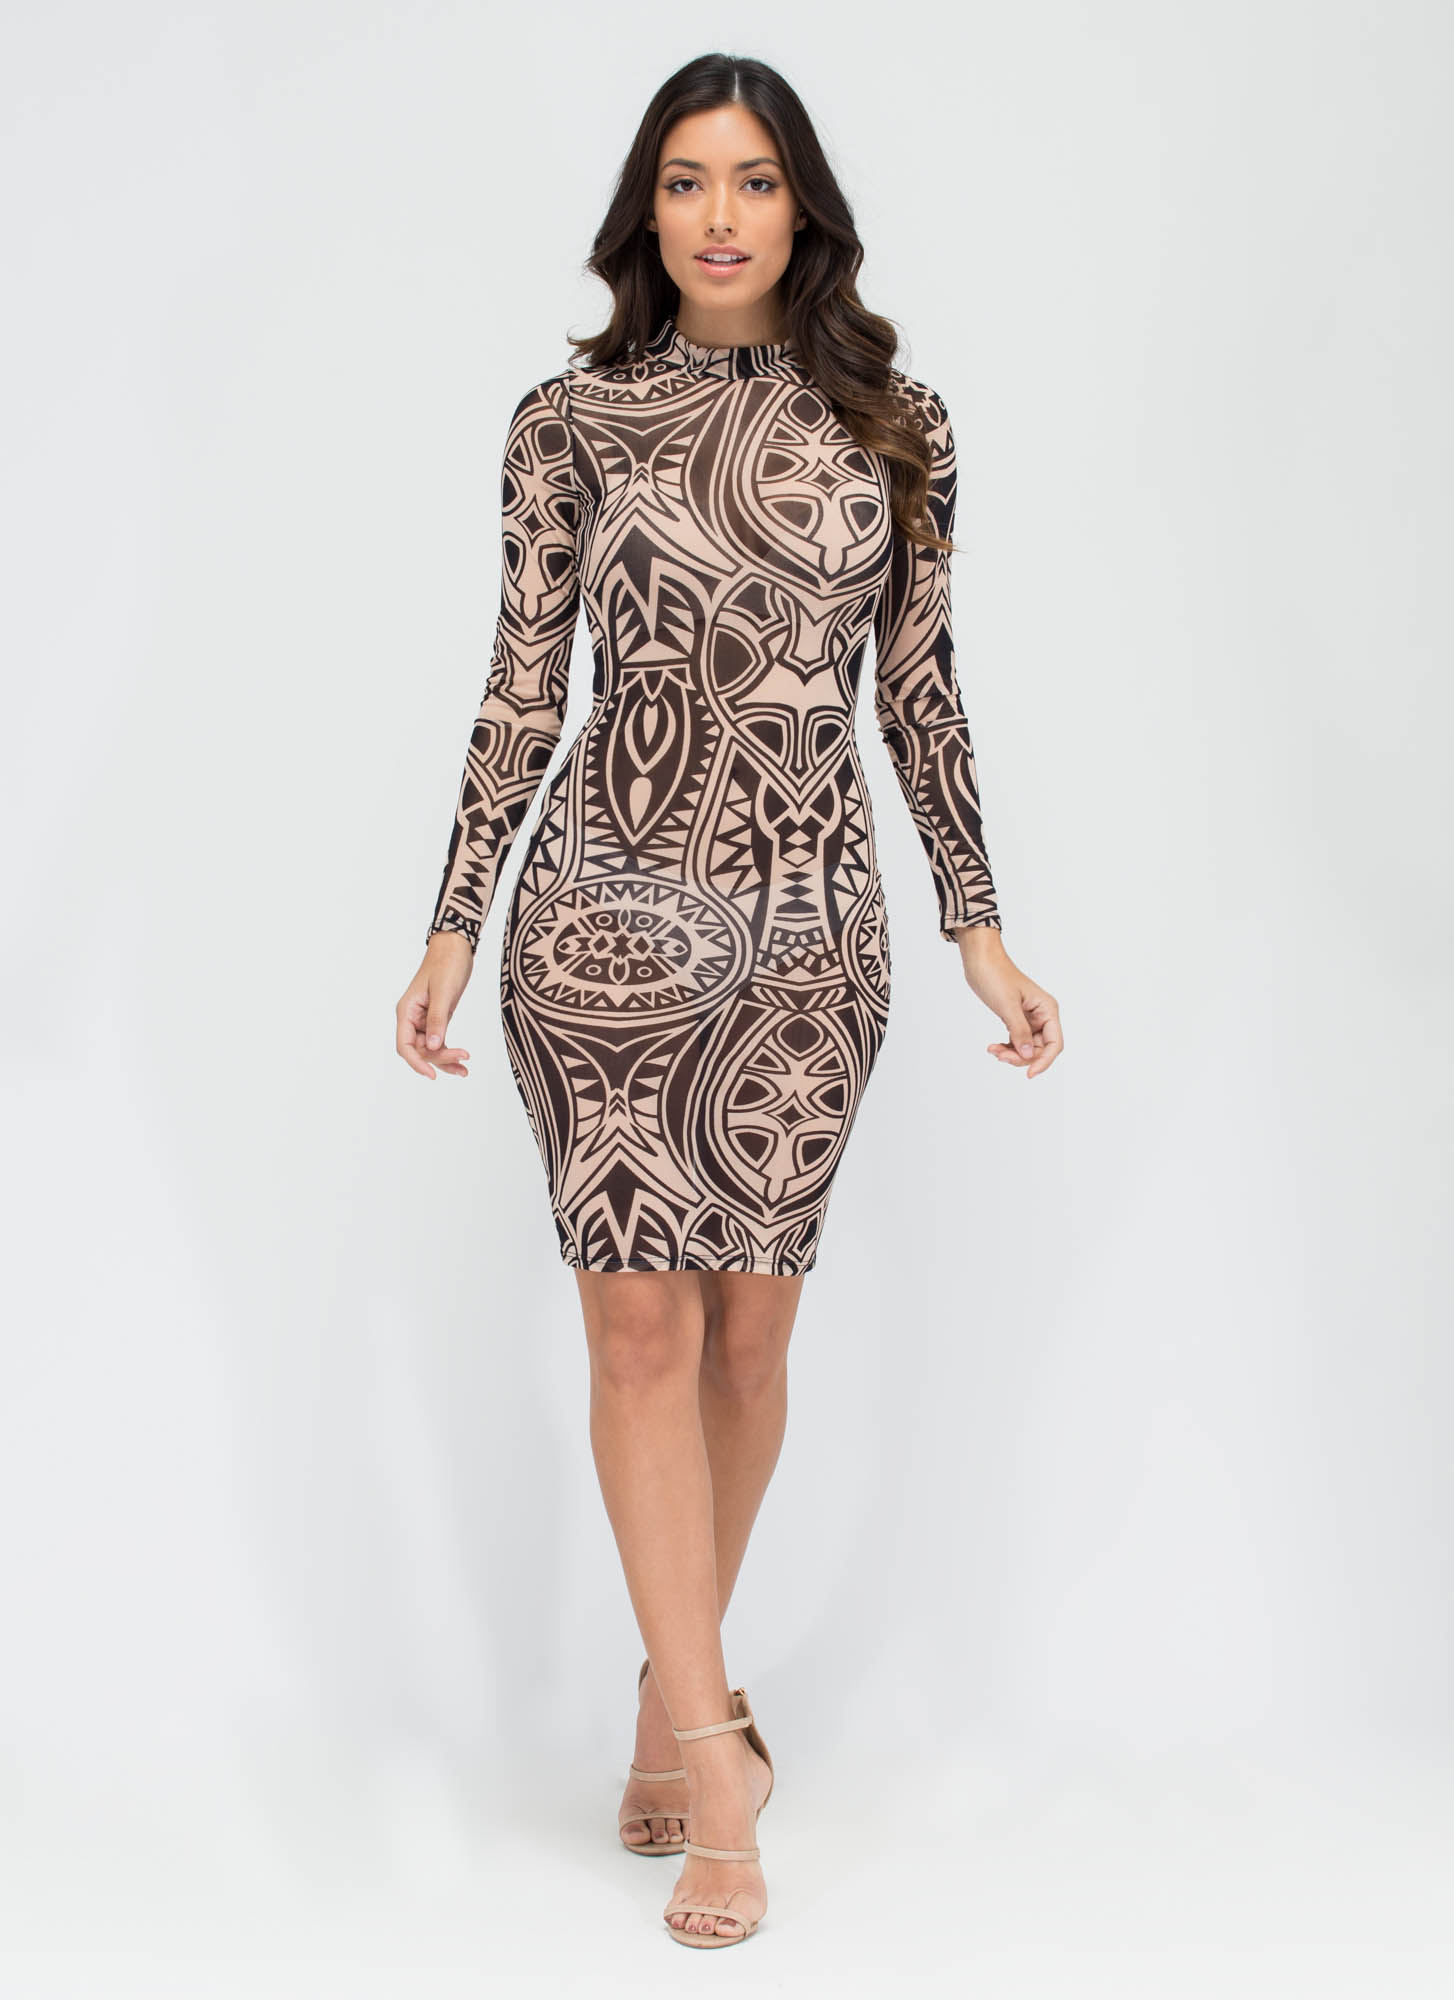 Tattoo Parlor Sheer Patterned Midi Dress